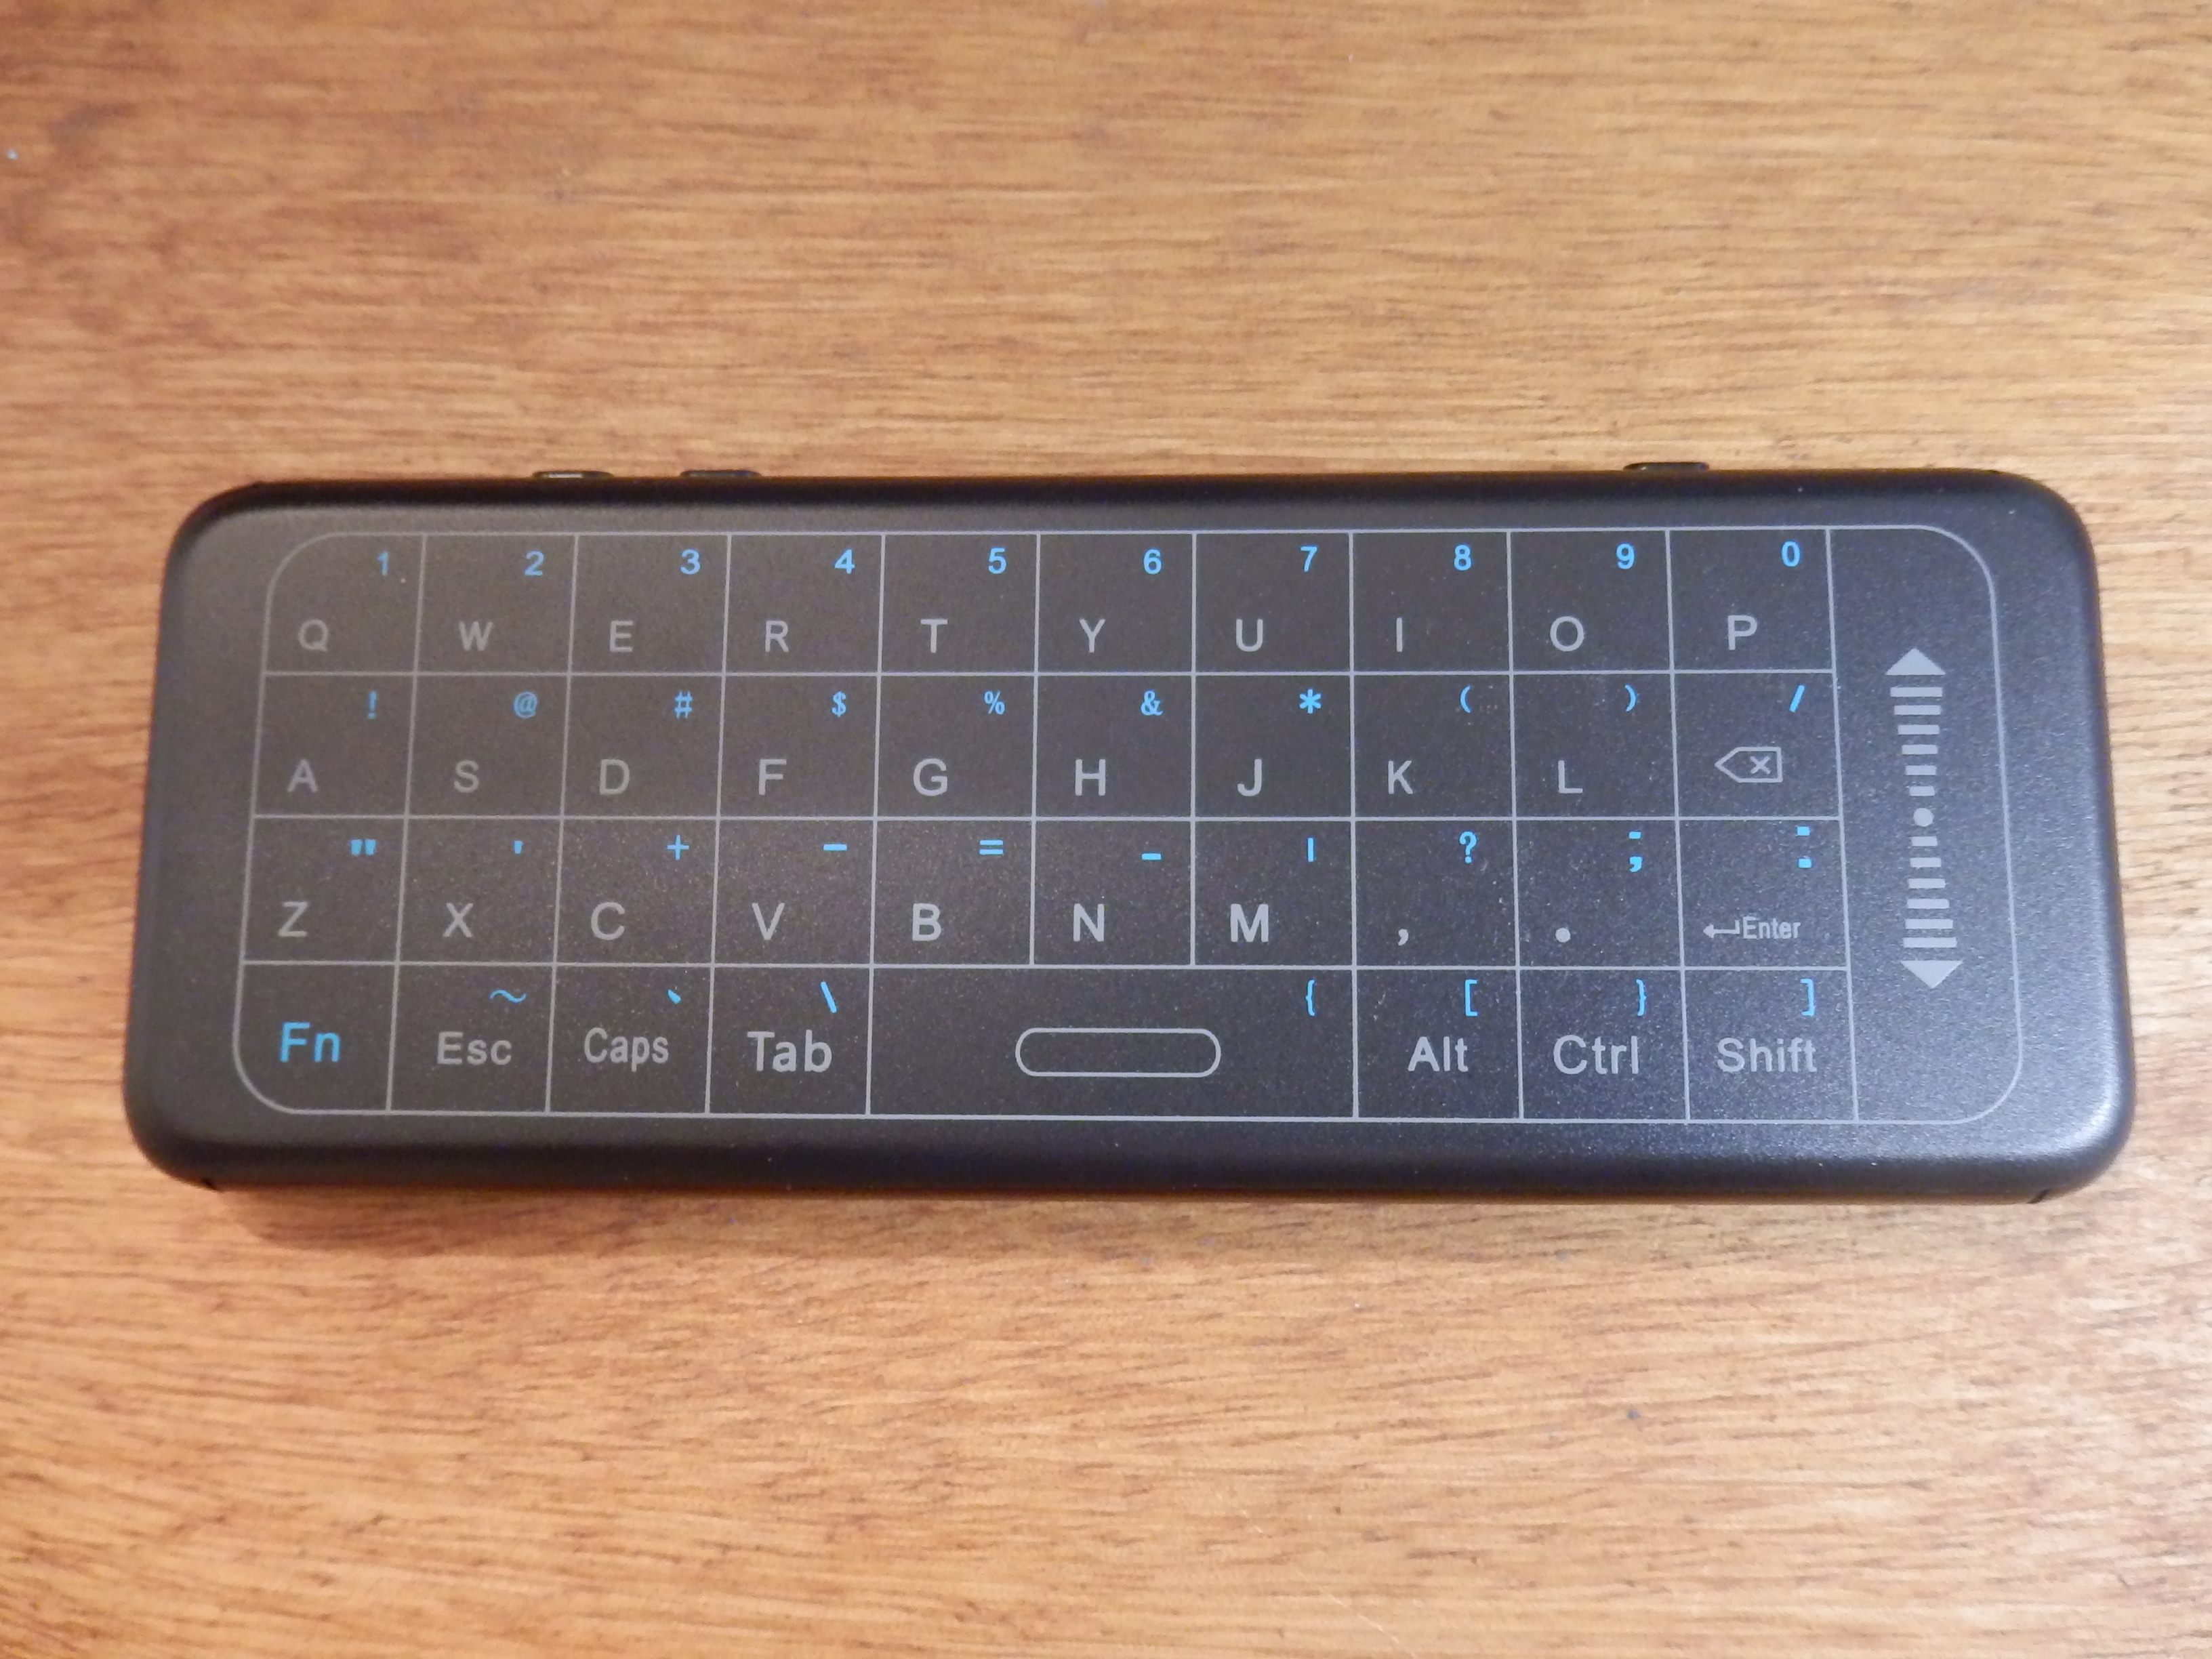 DMYCO Mini Wireless Keyboard and Touchpad with IR Remote Control, USB Rechargeable